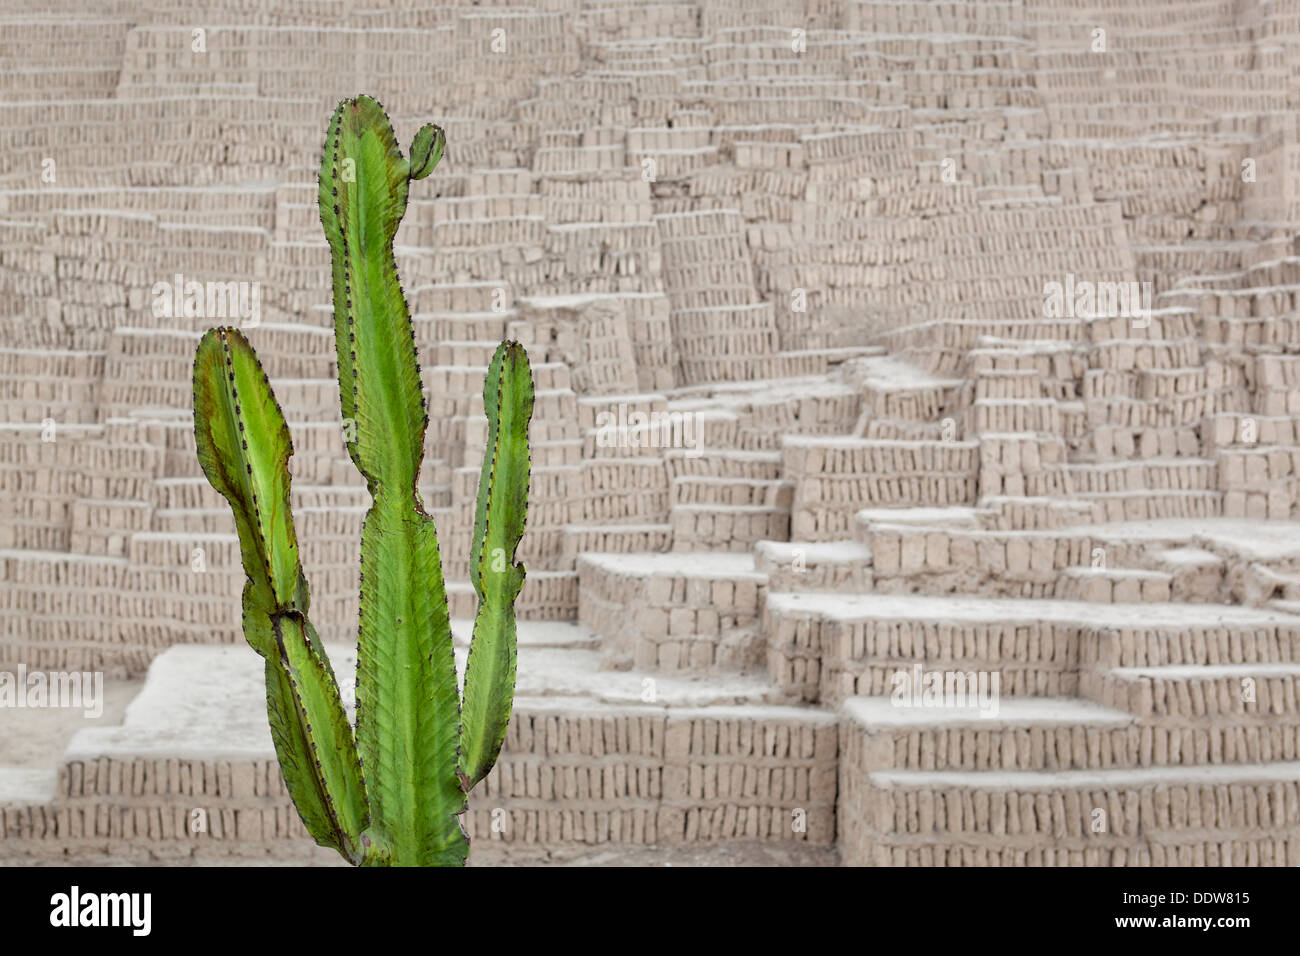 Huaca Pucllana: detail of adobe mud brick walls dating back to Lima culture of 400AD, with green candelabra euphorbia cactus in - Stock Image